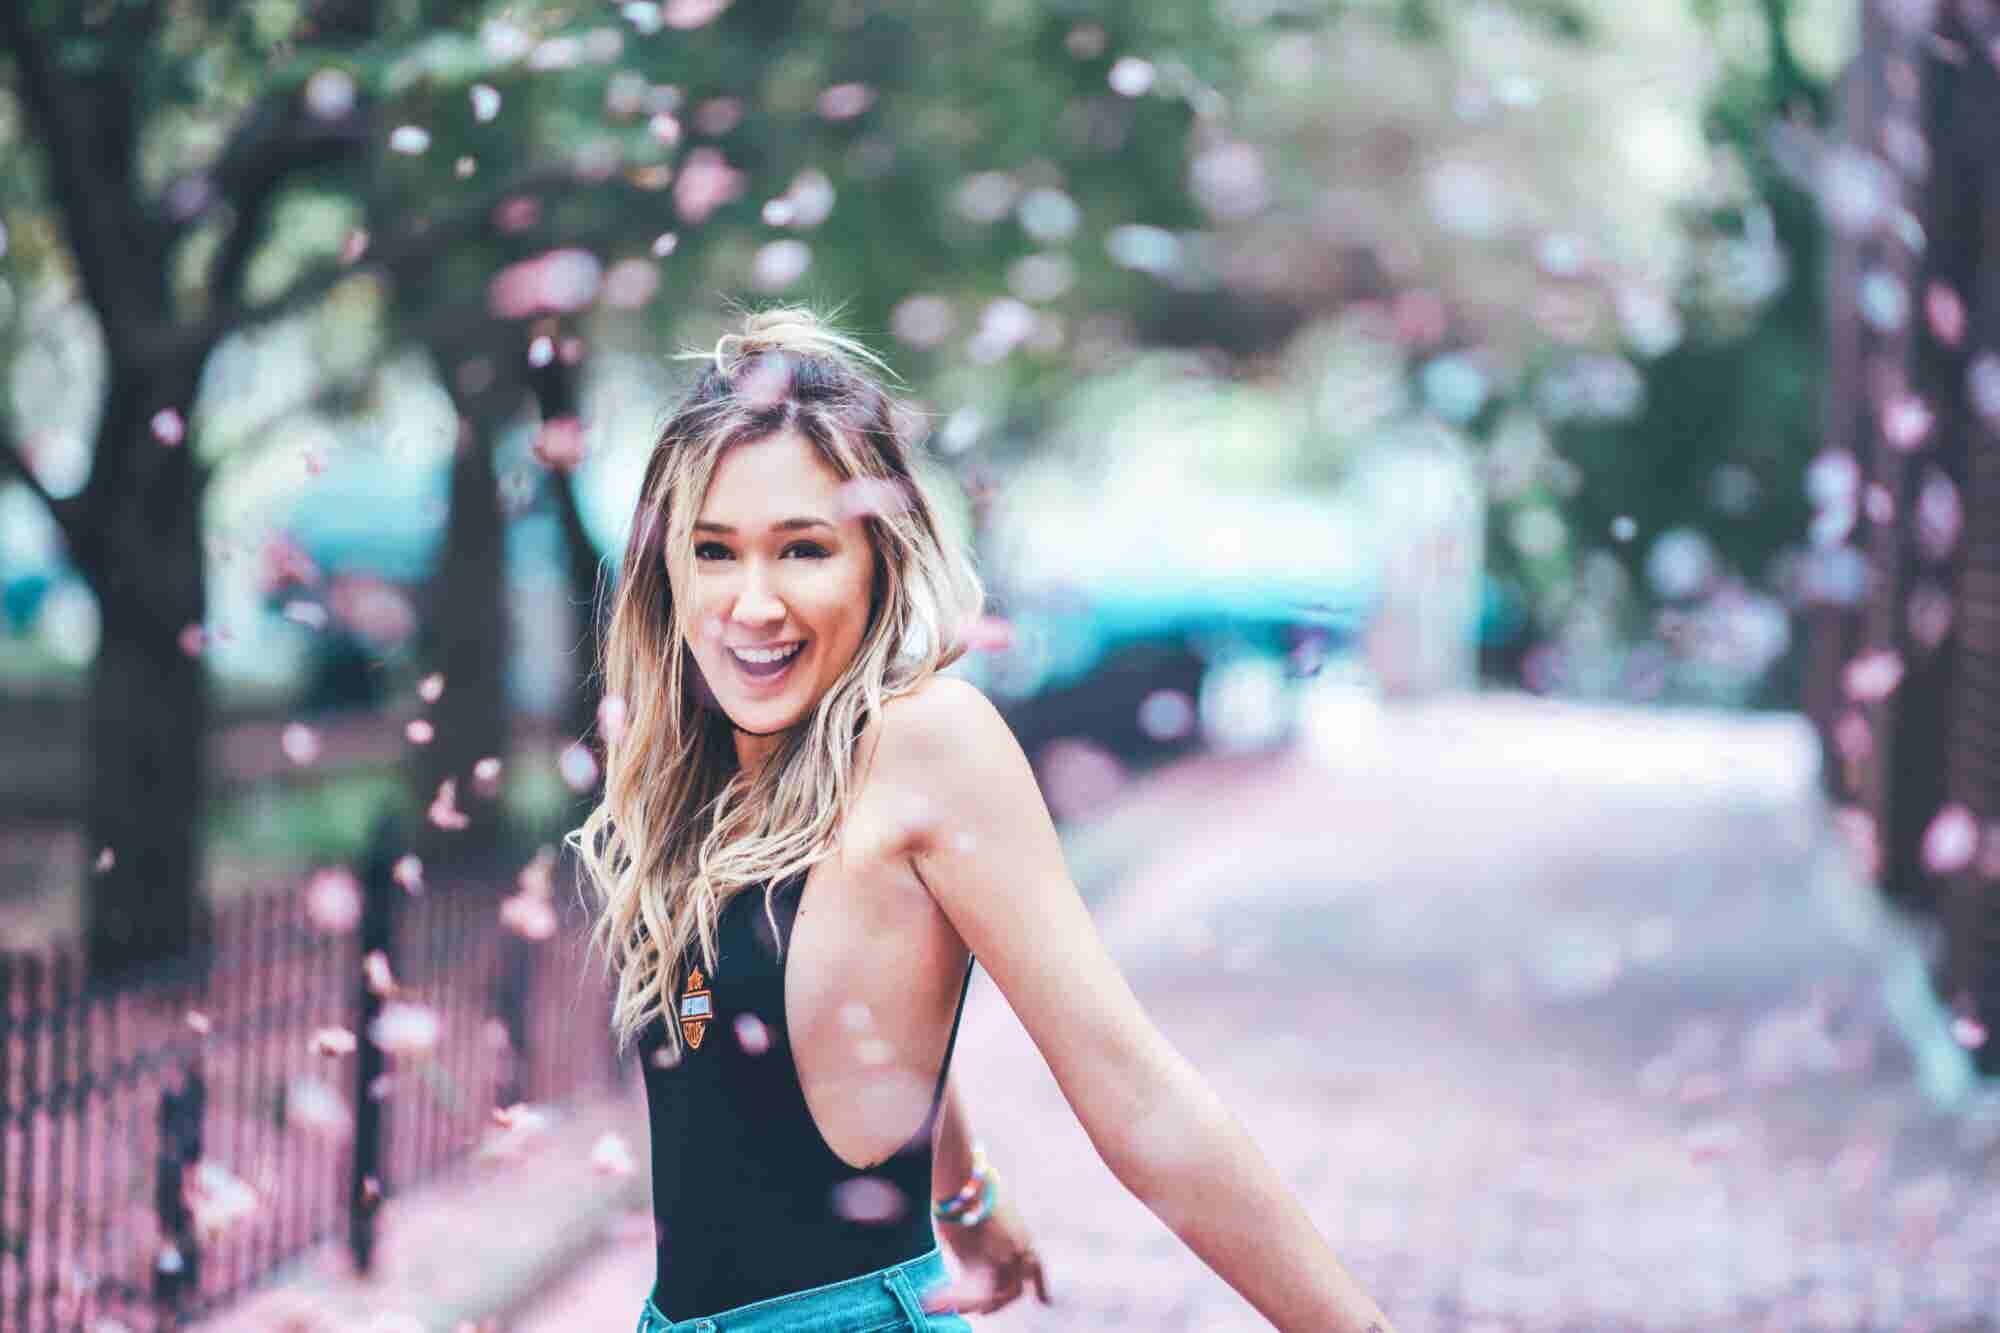 How LaurDIY Went From Dorm Room Blogger to YouTube Star With 8.4 Milli...